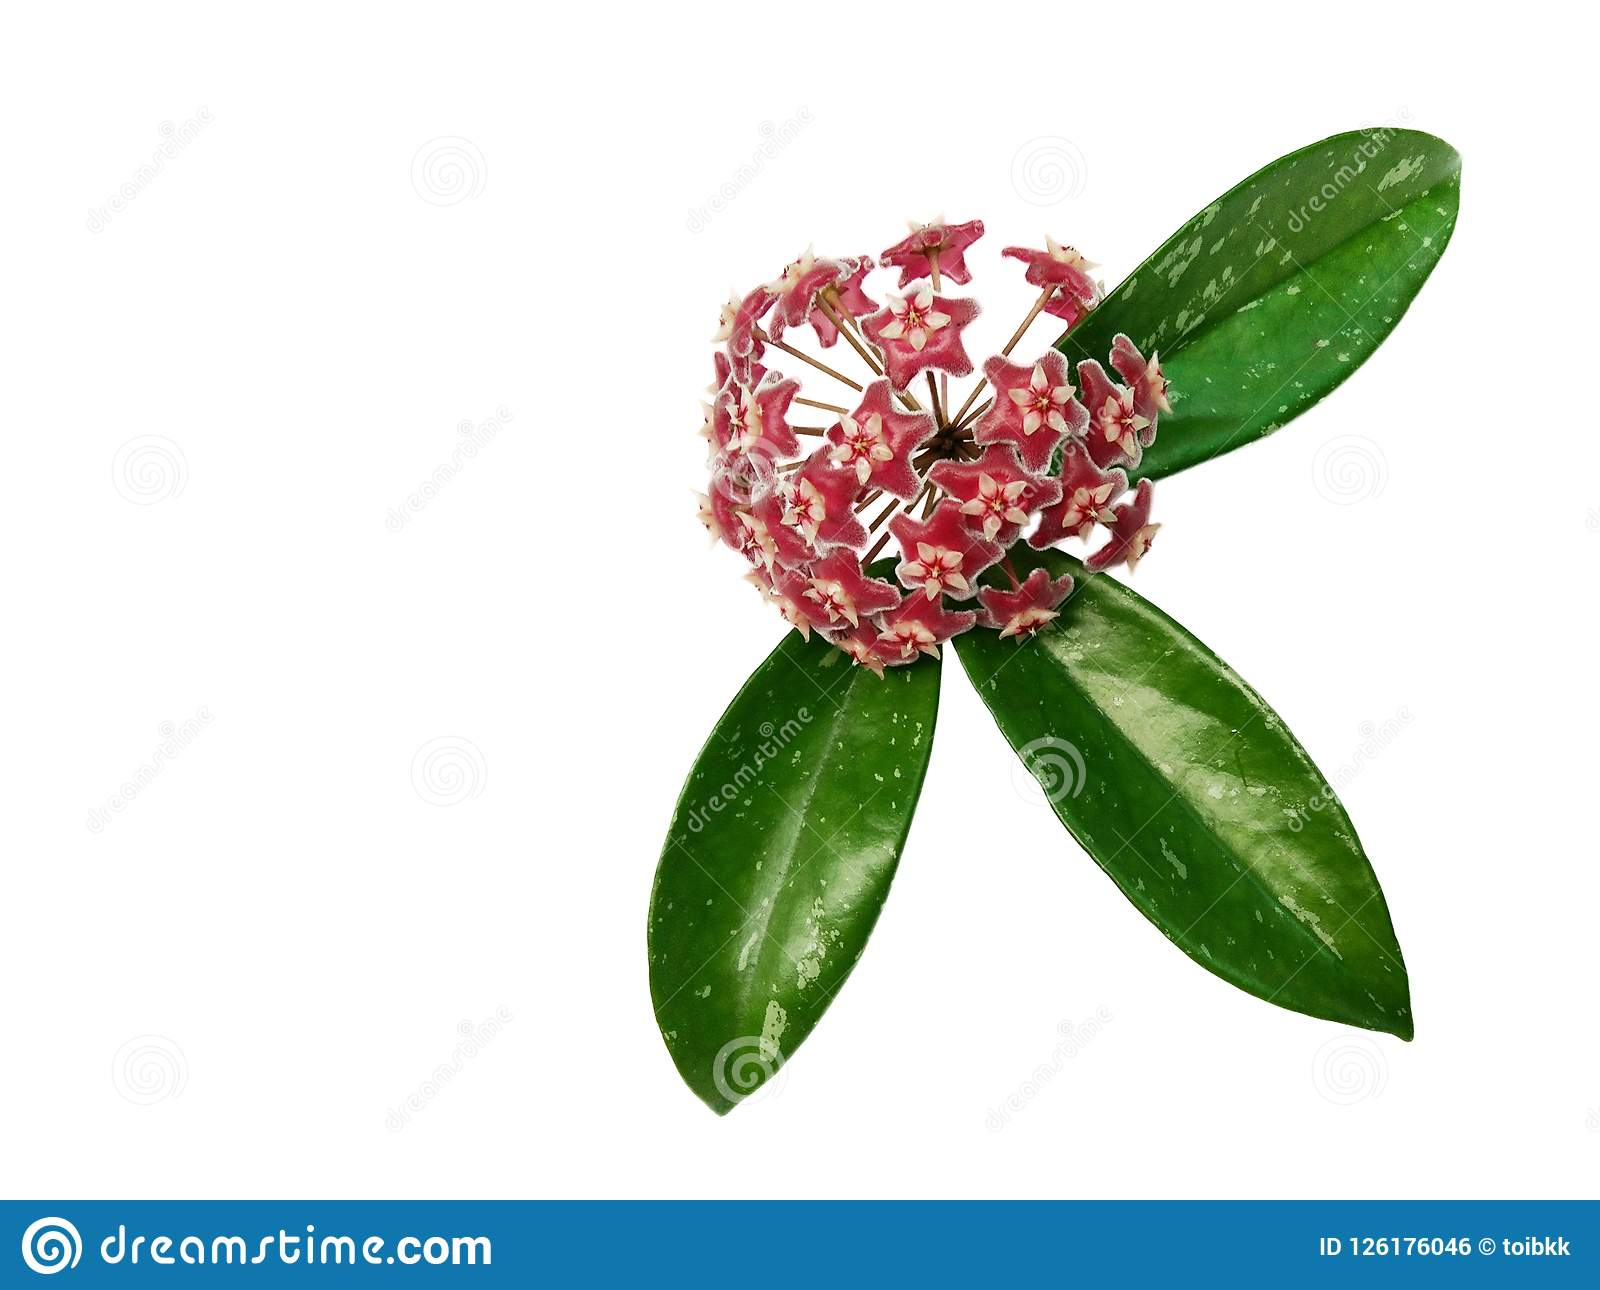 Hoya pubicalyx Pink silver flower and green leaves isolated white background